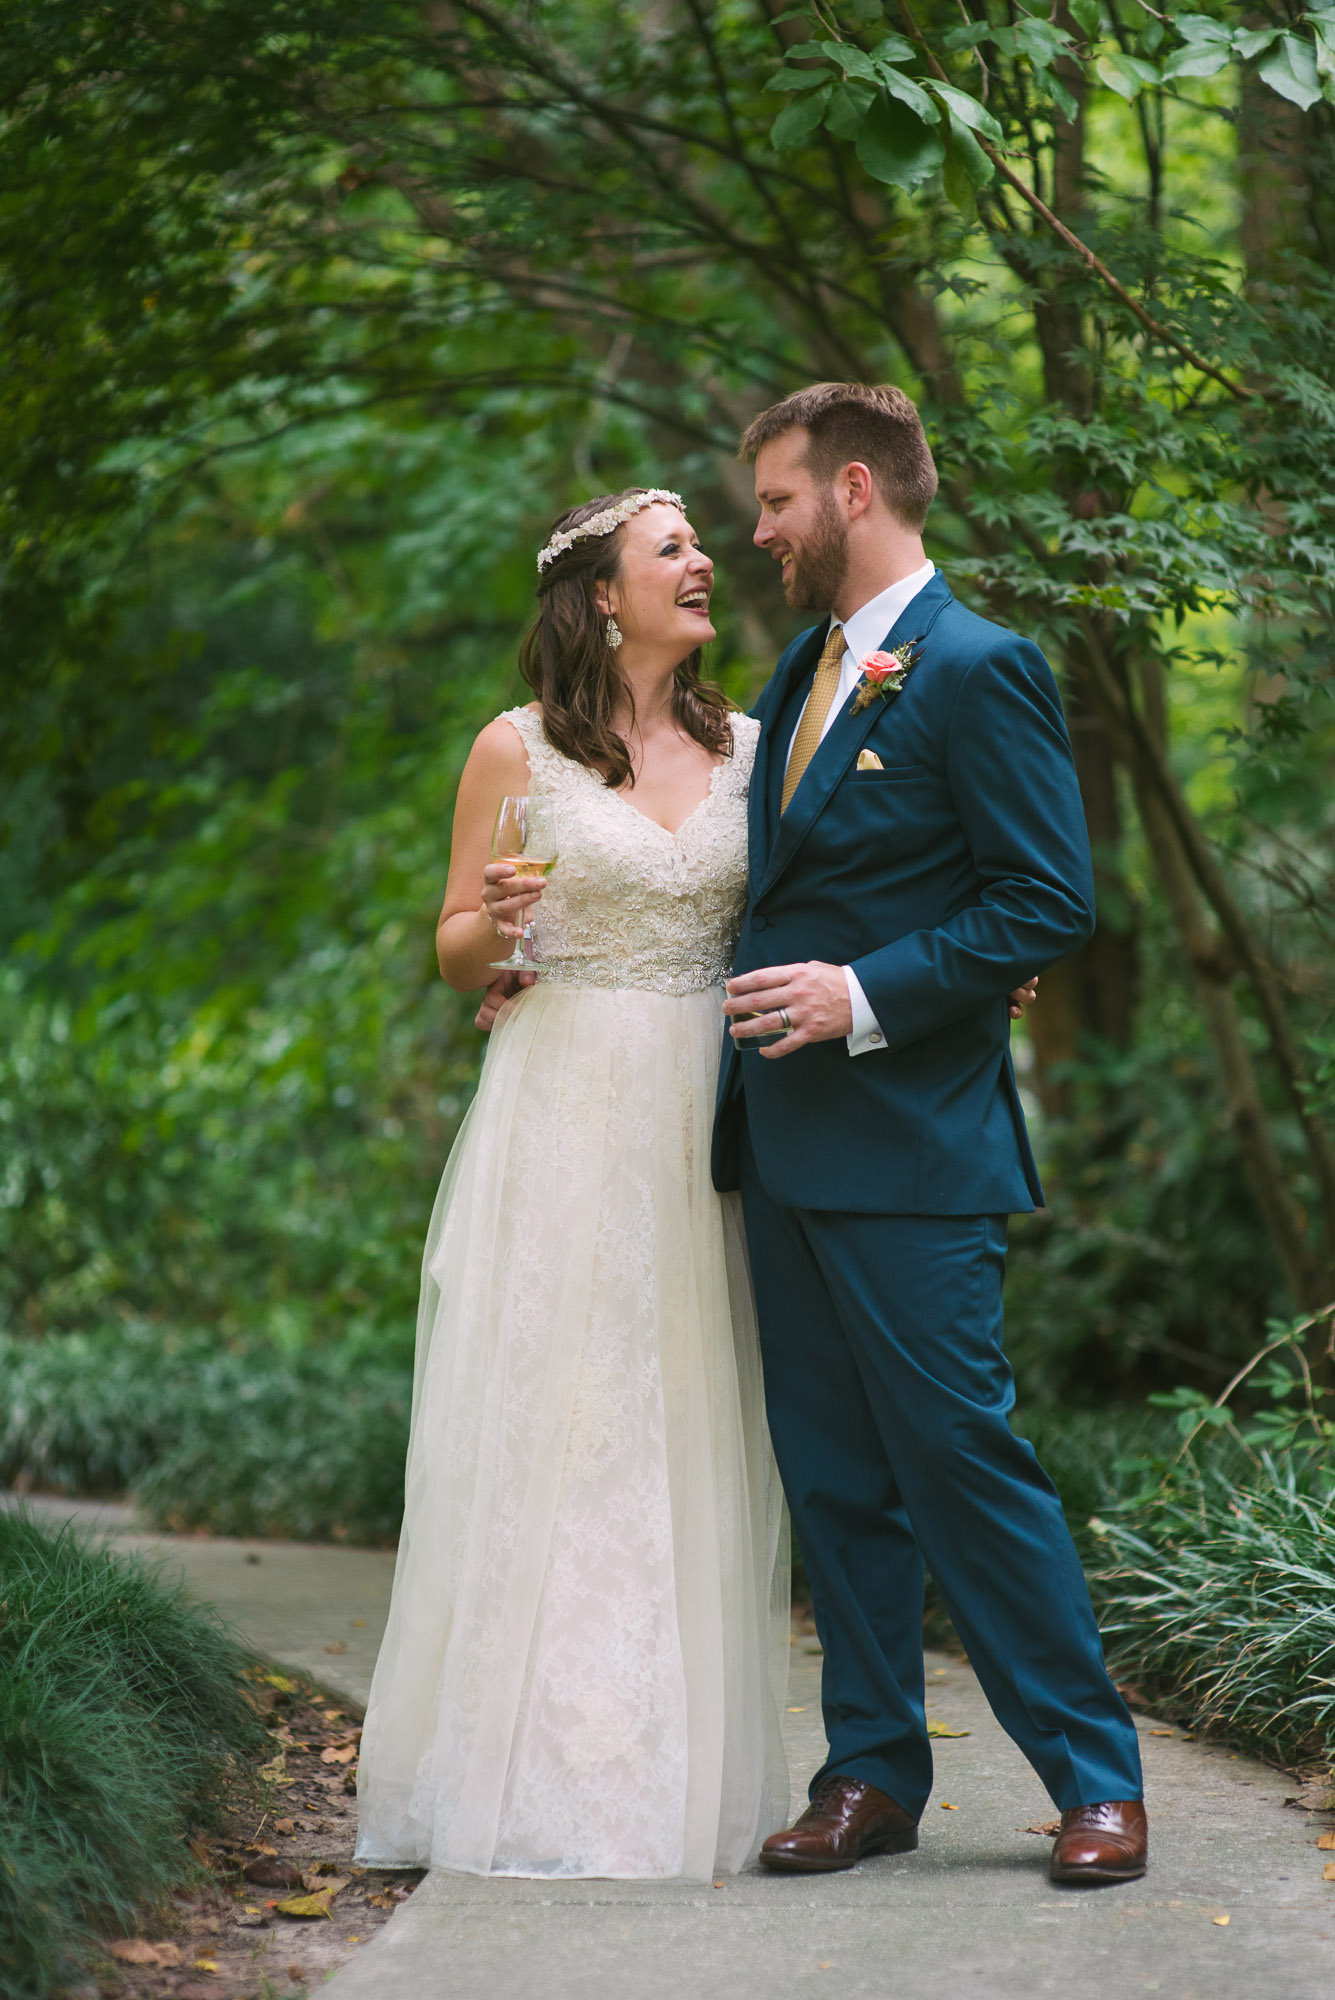 Cator Woolford Gardens Wedding | Photographer; LeahAndMark & Co.; Outdoor; Fall Wedding; Summer Wedding; Green; Nature; Traditional